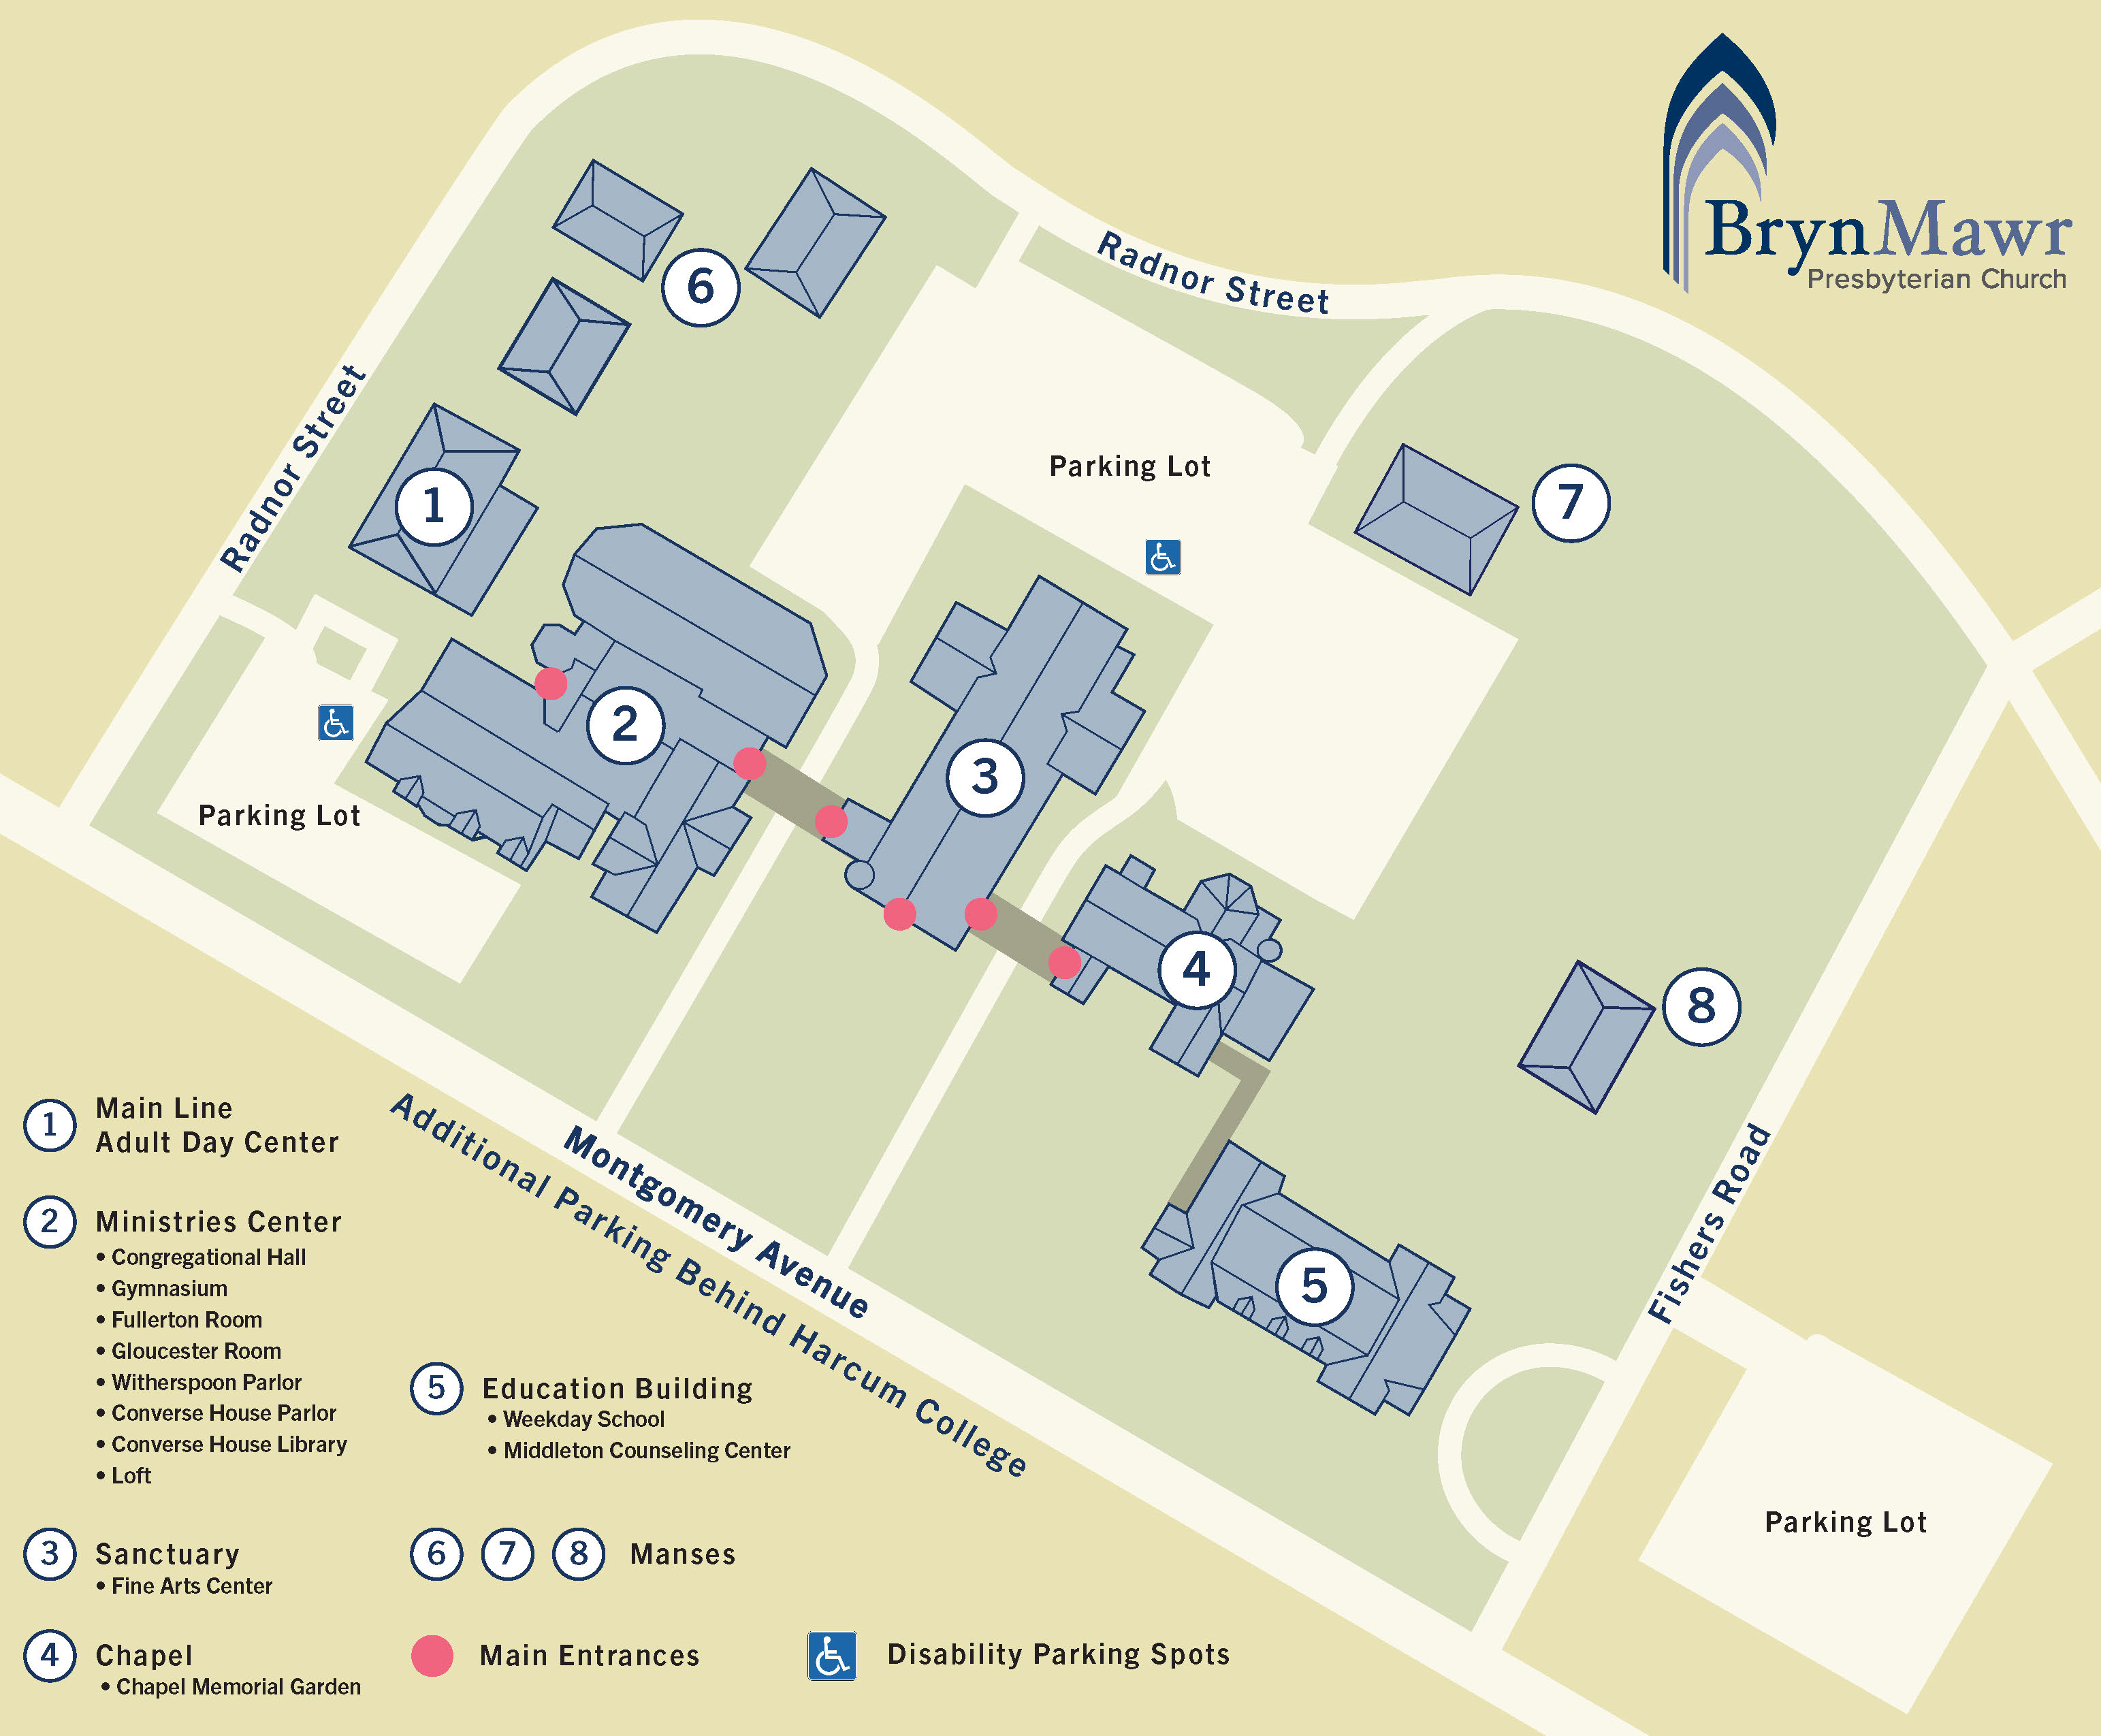 Bryn Mawr Presbyterian Church Overview Map